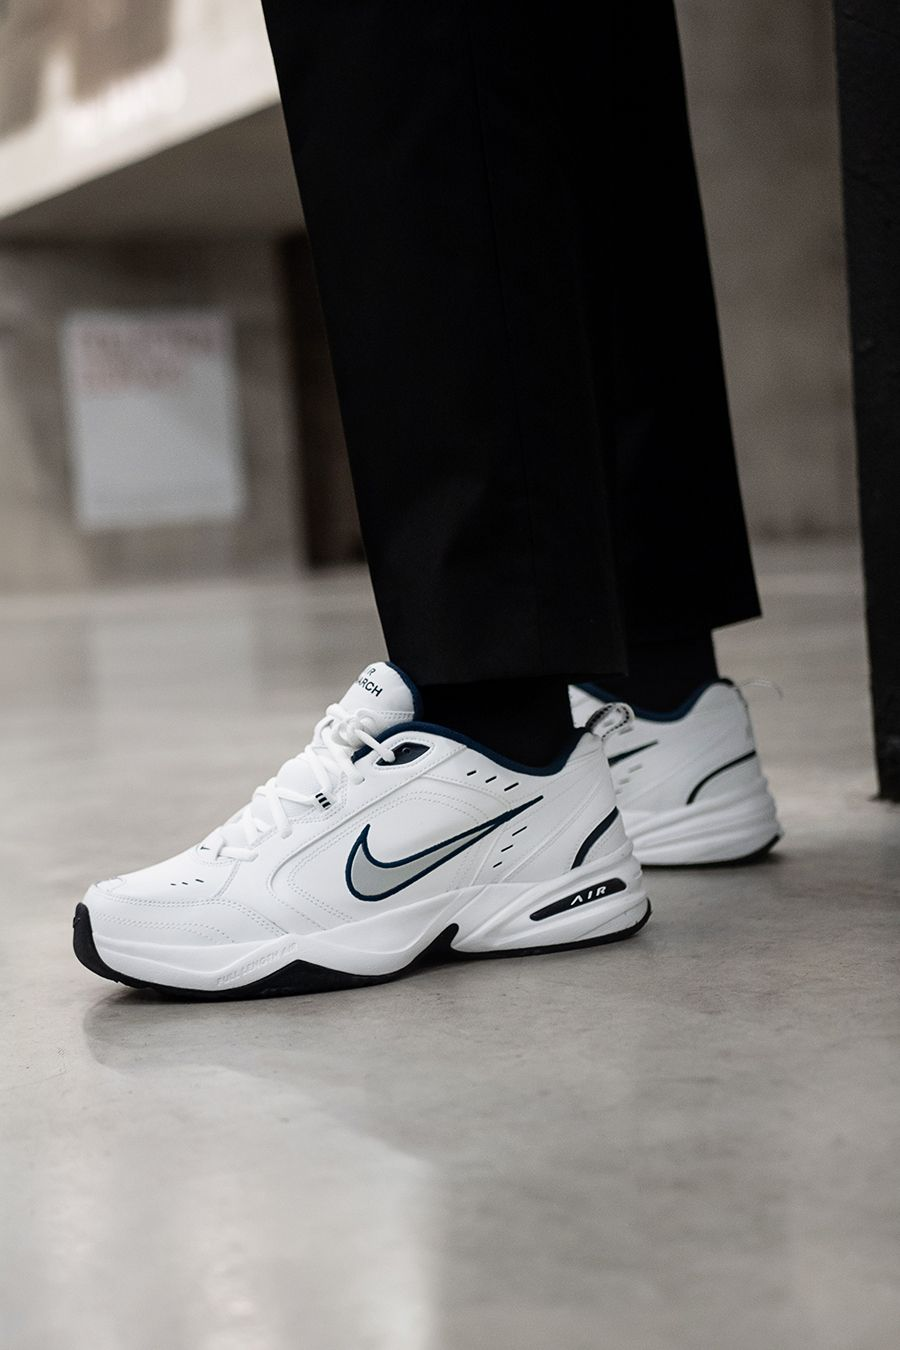 White Nike Air Monarch trainers  9f4108a12